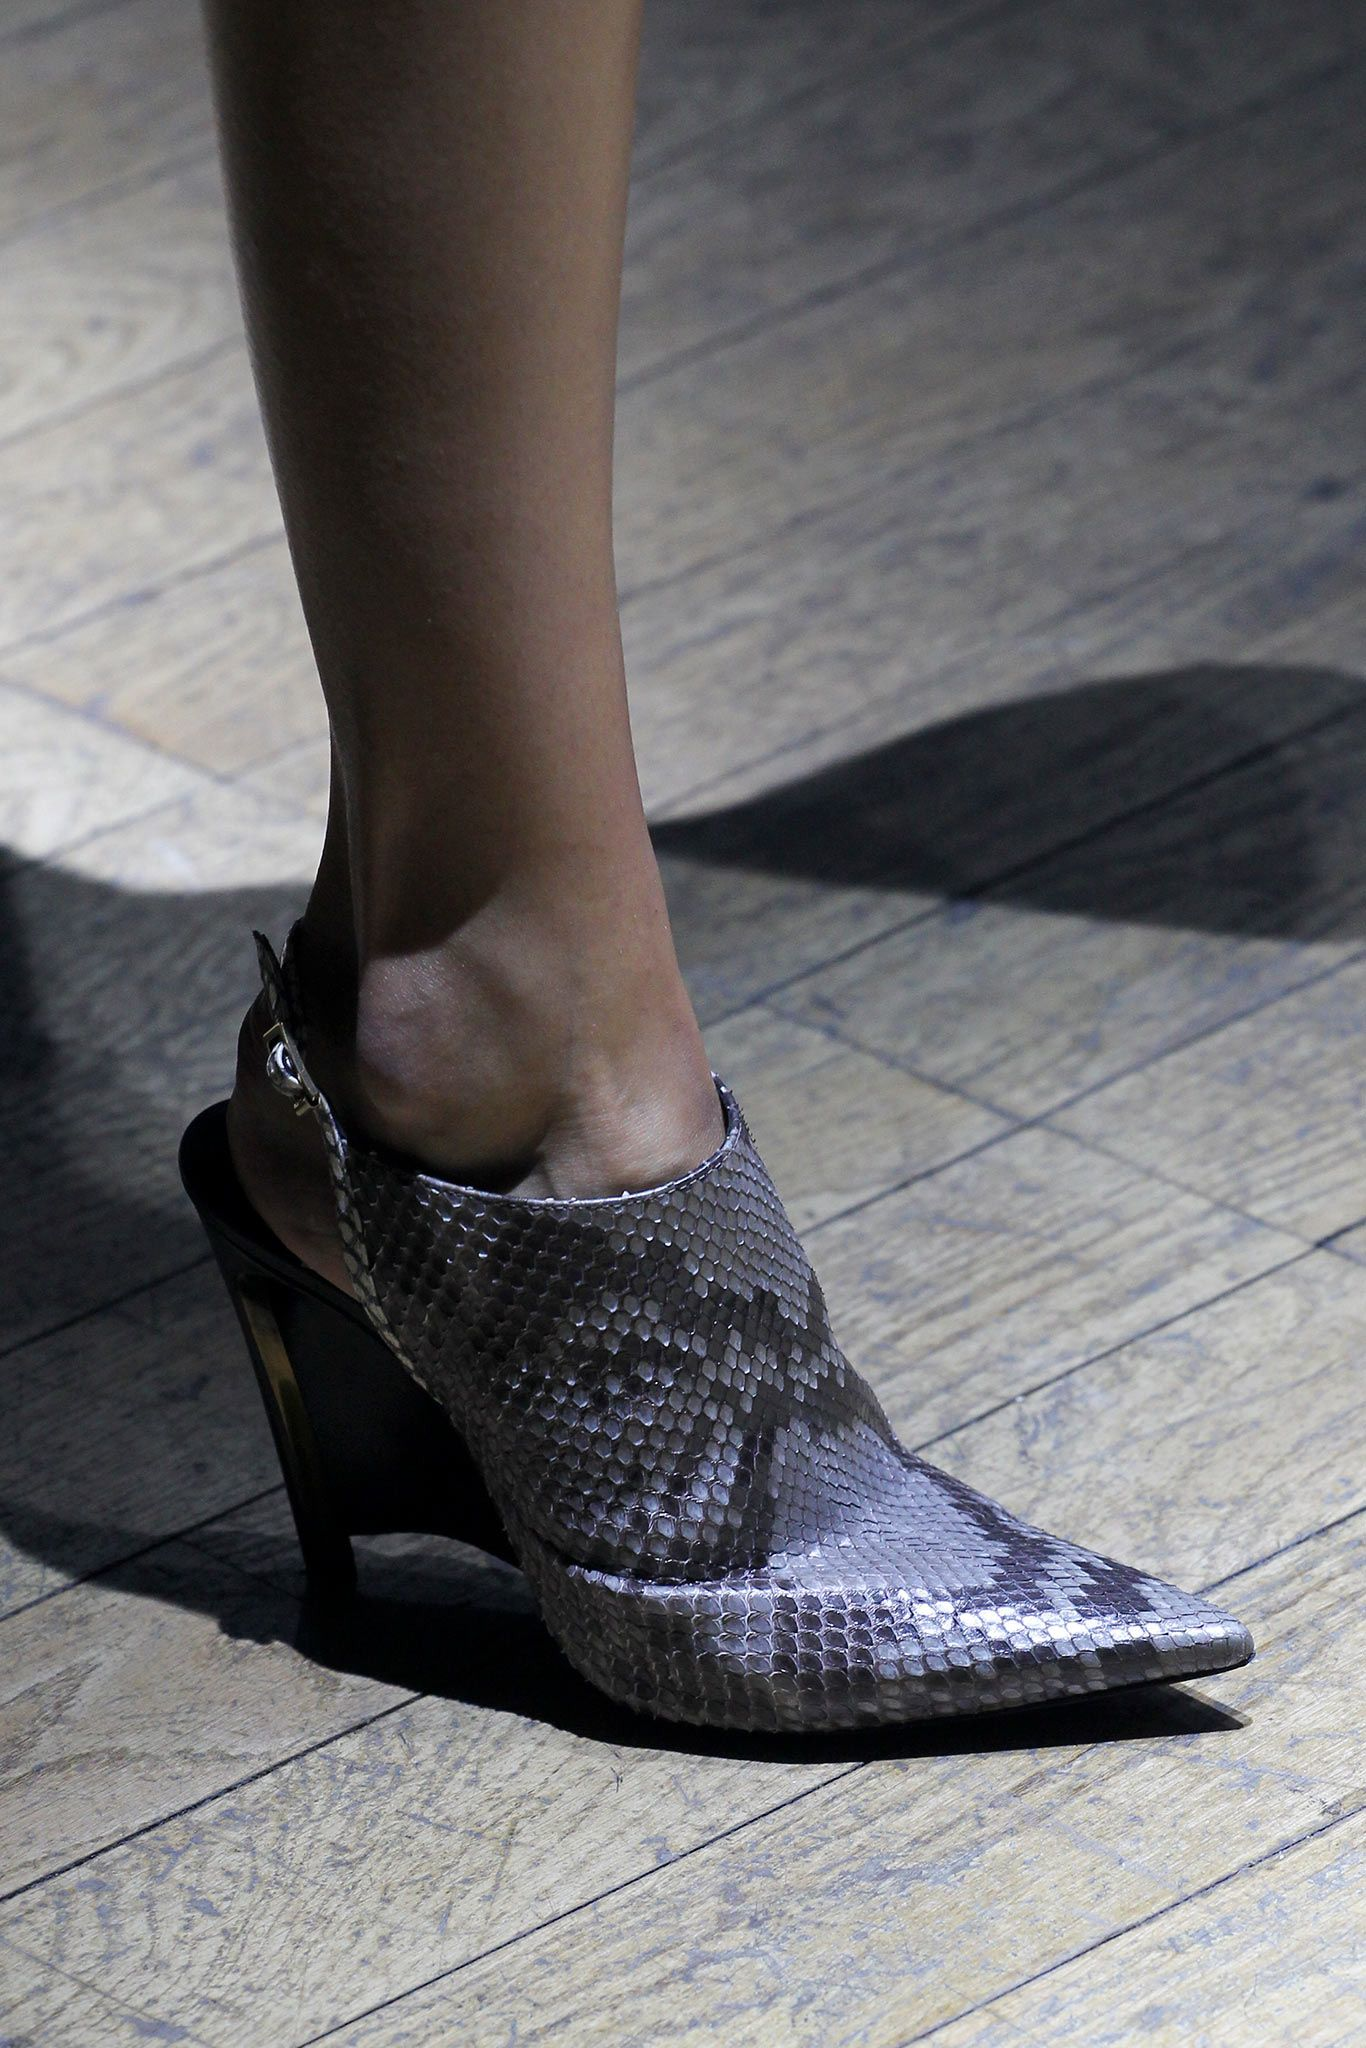 Lanvin | Spring 2015 Ready-to-Wear Collection | #shoes #runway #fashion